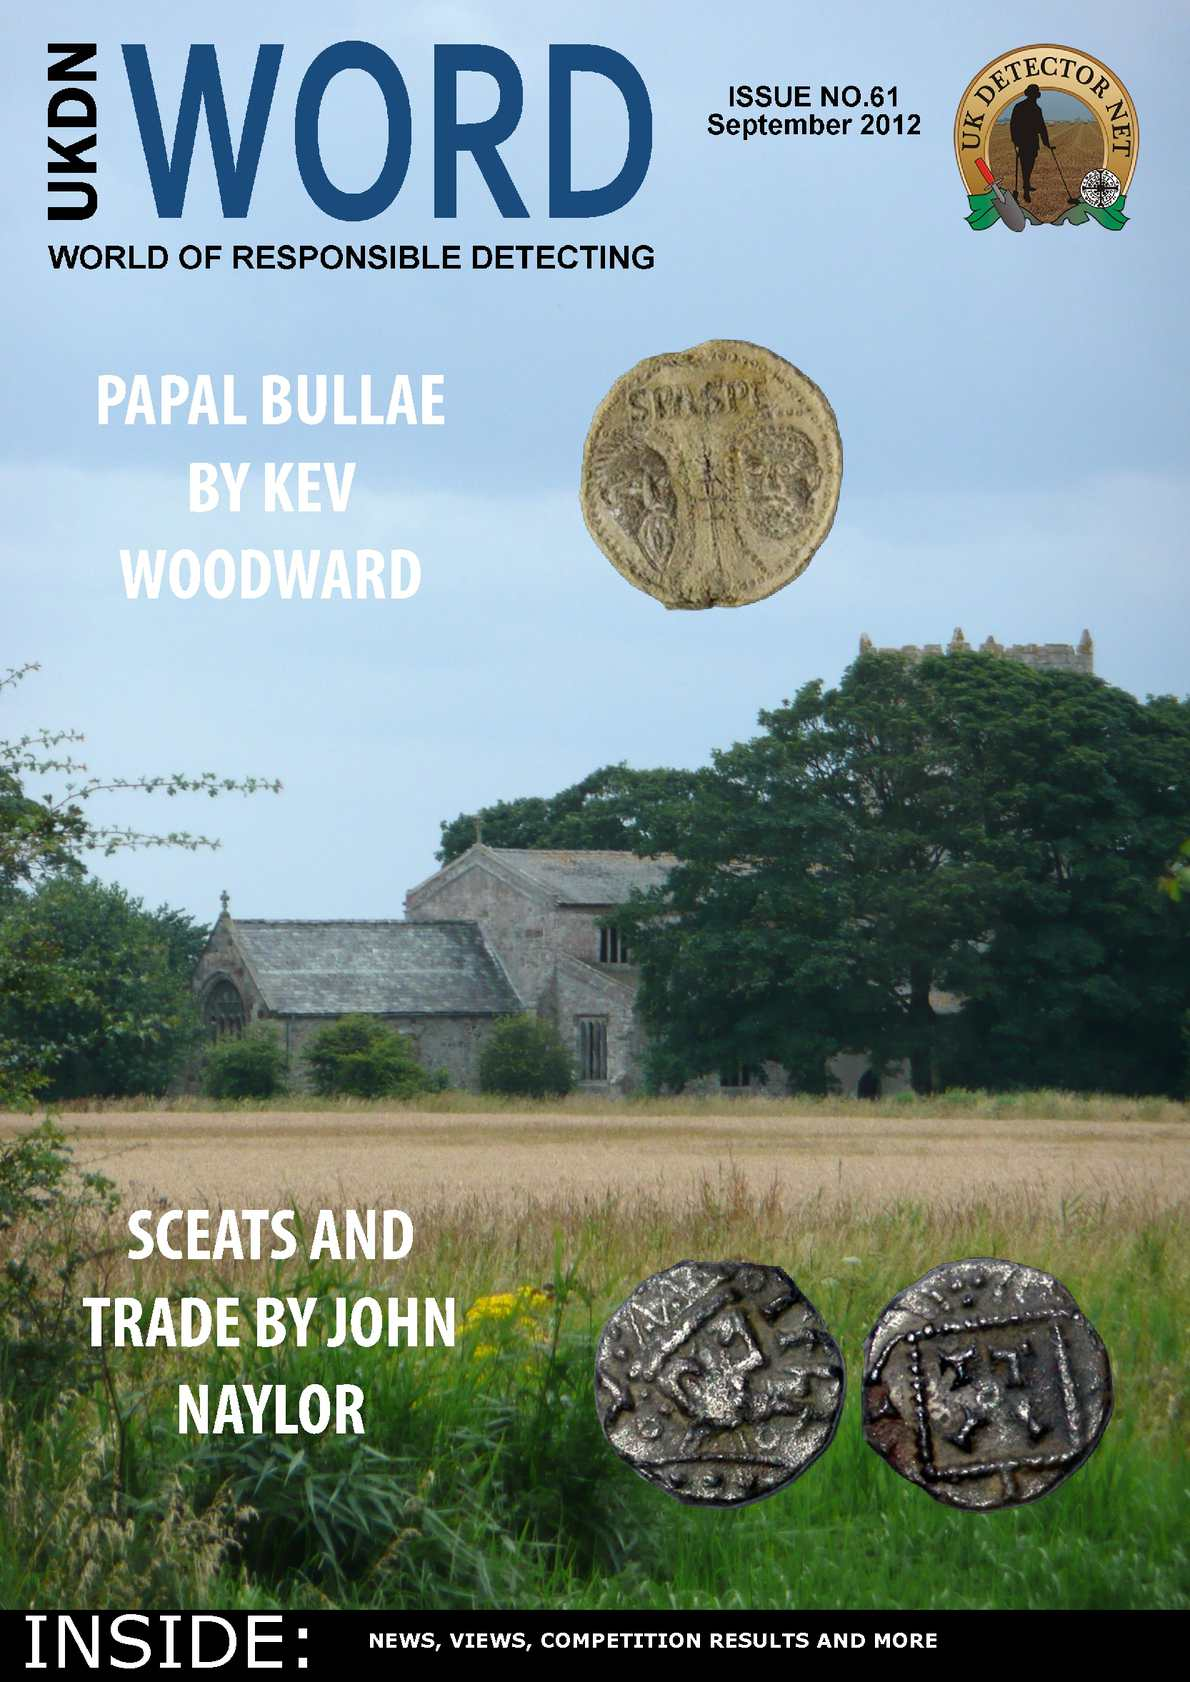 UKDN Word - Issue 61 - September 2012